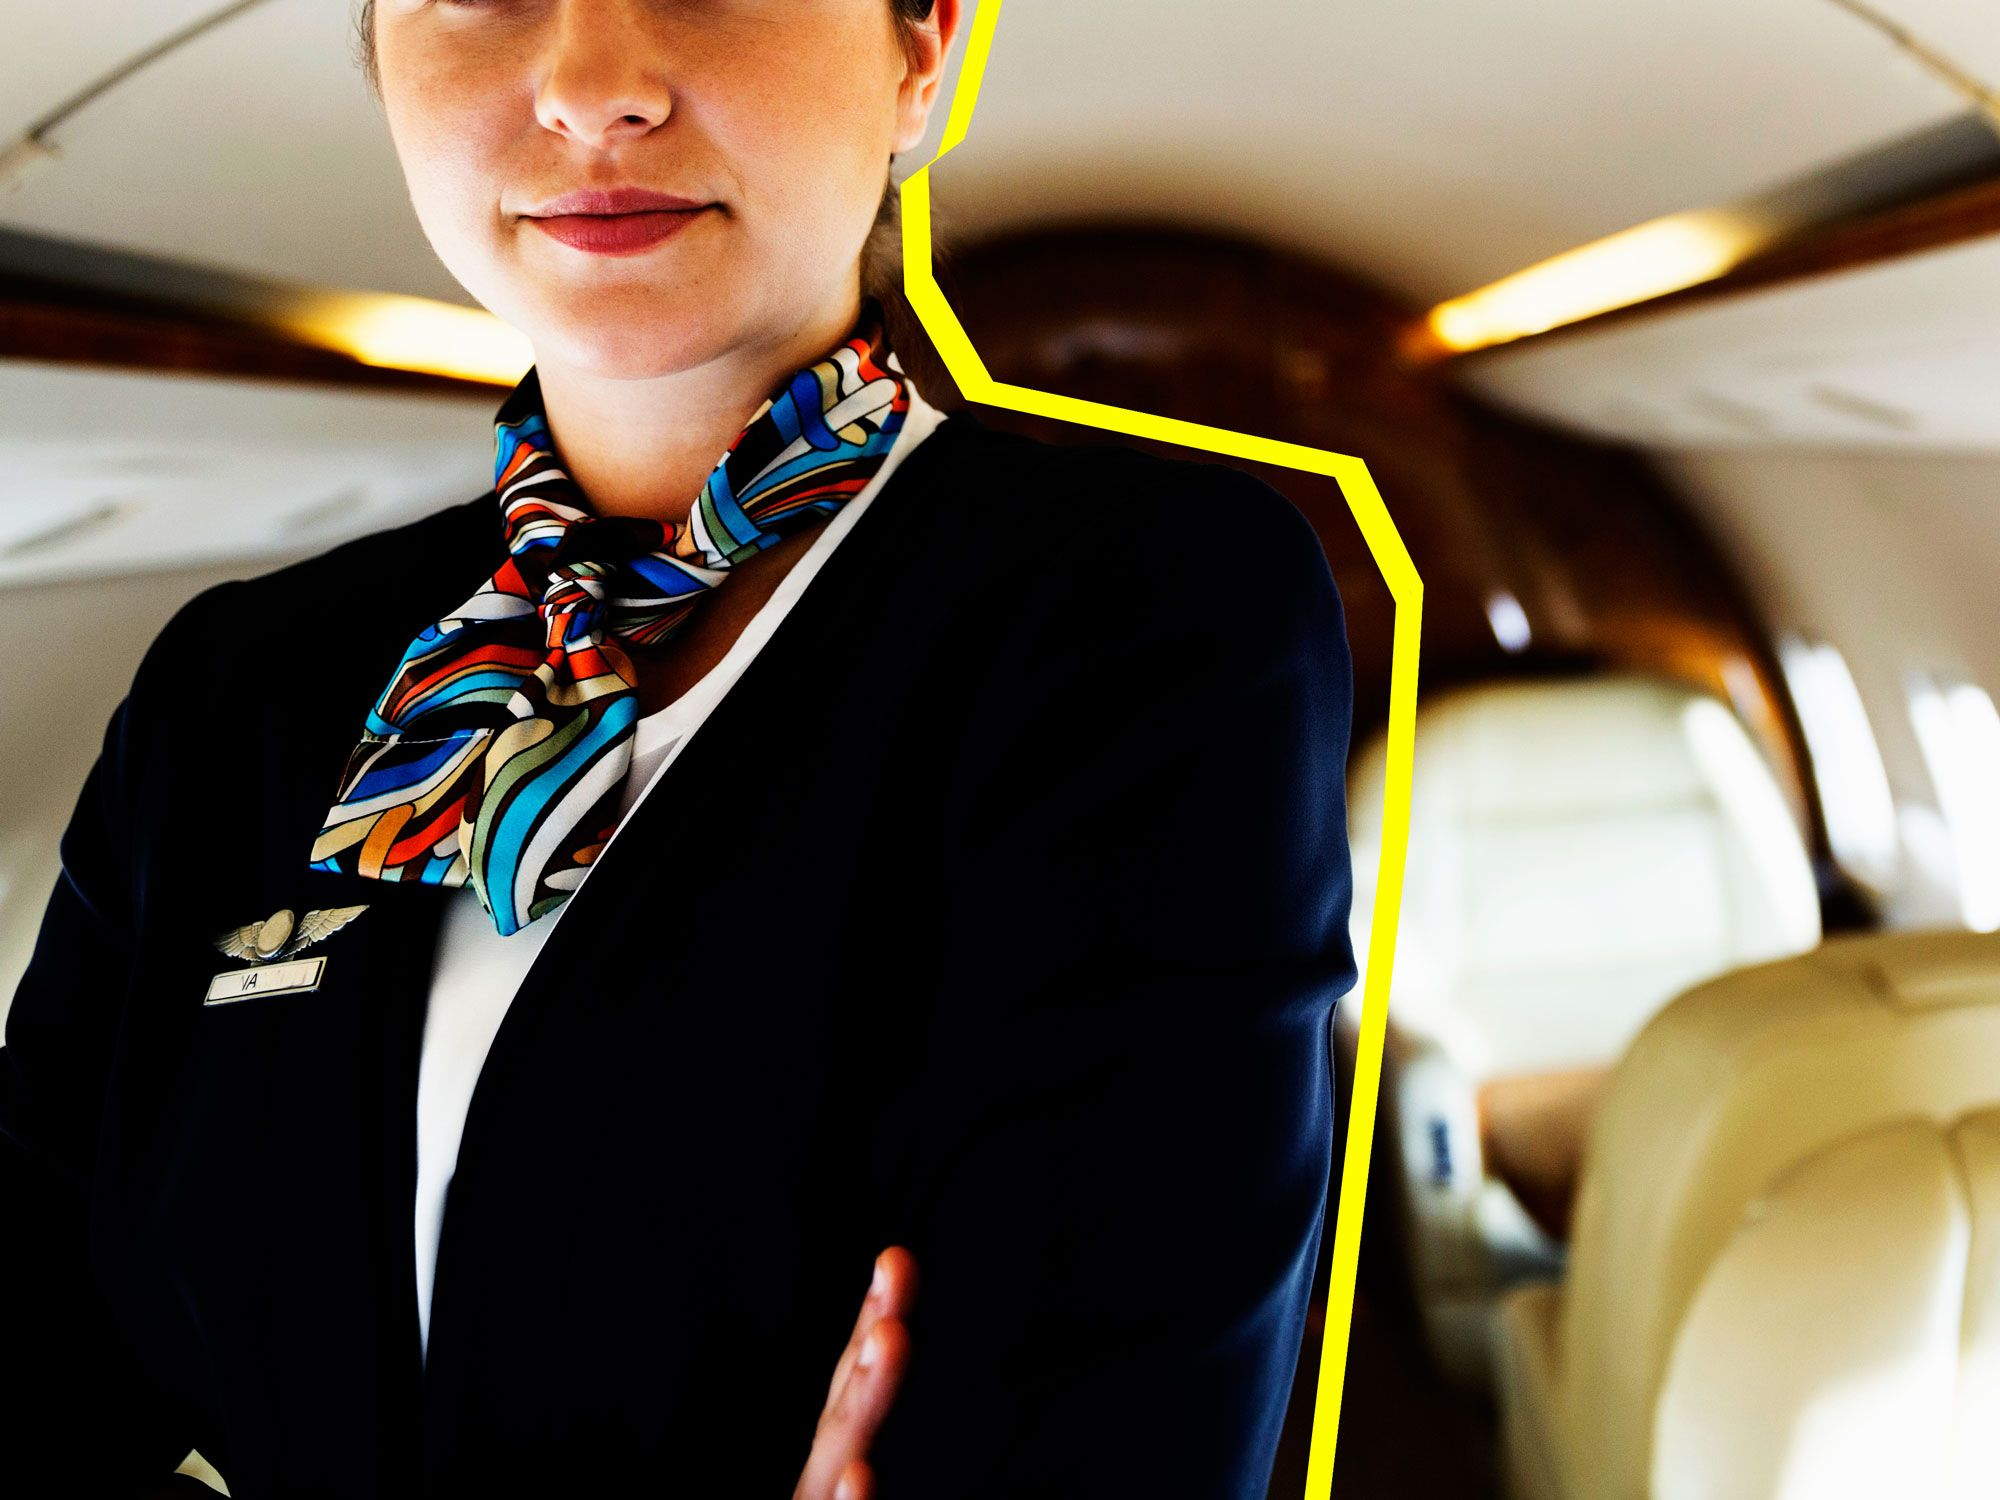 Stewardess sexual harassment